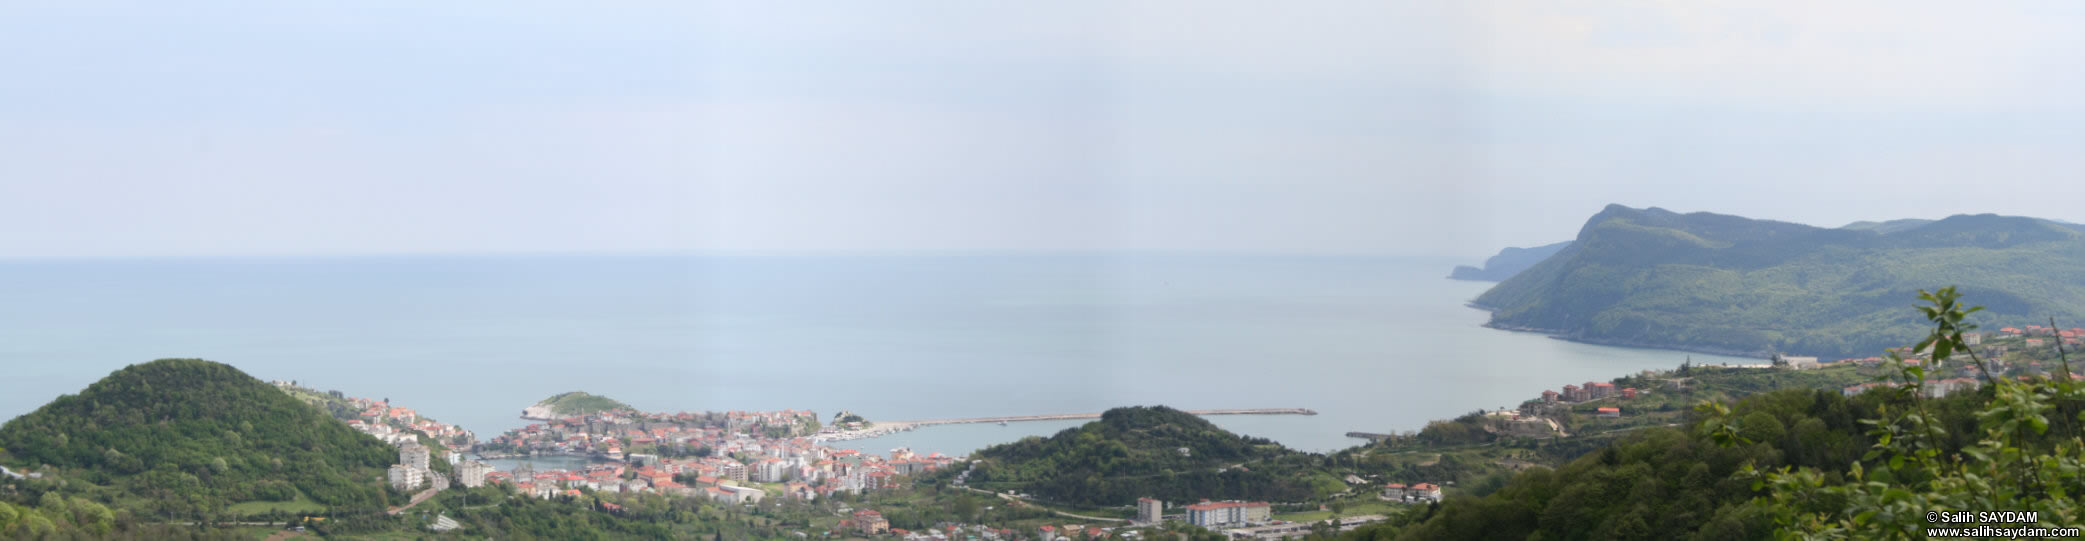 Panorama of Amasra 4 (Bartin)